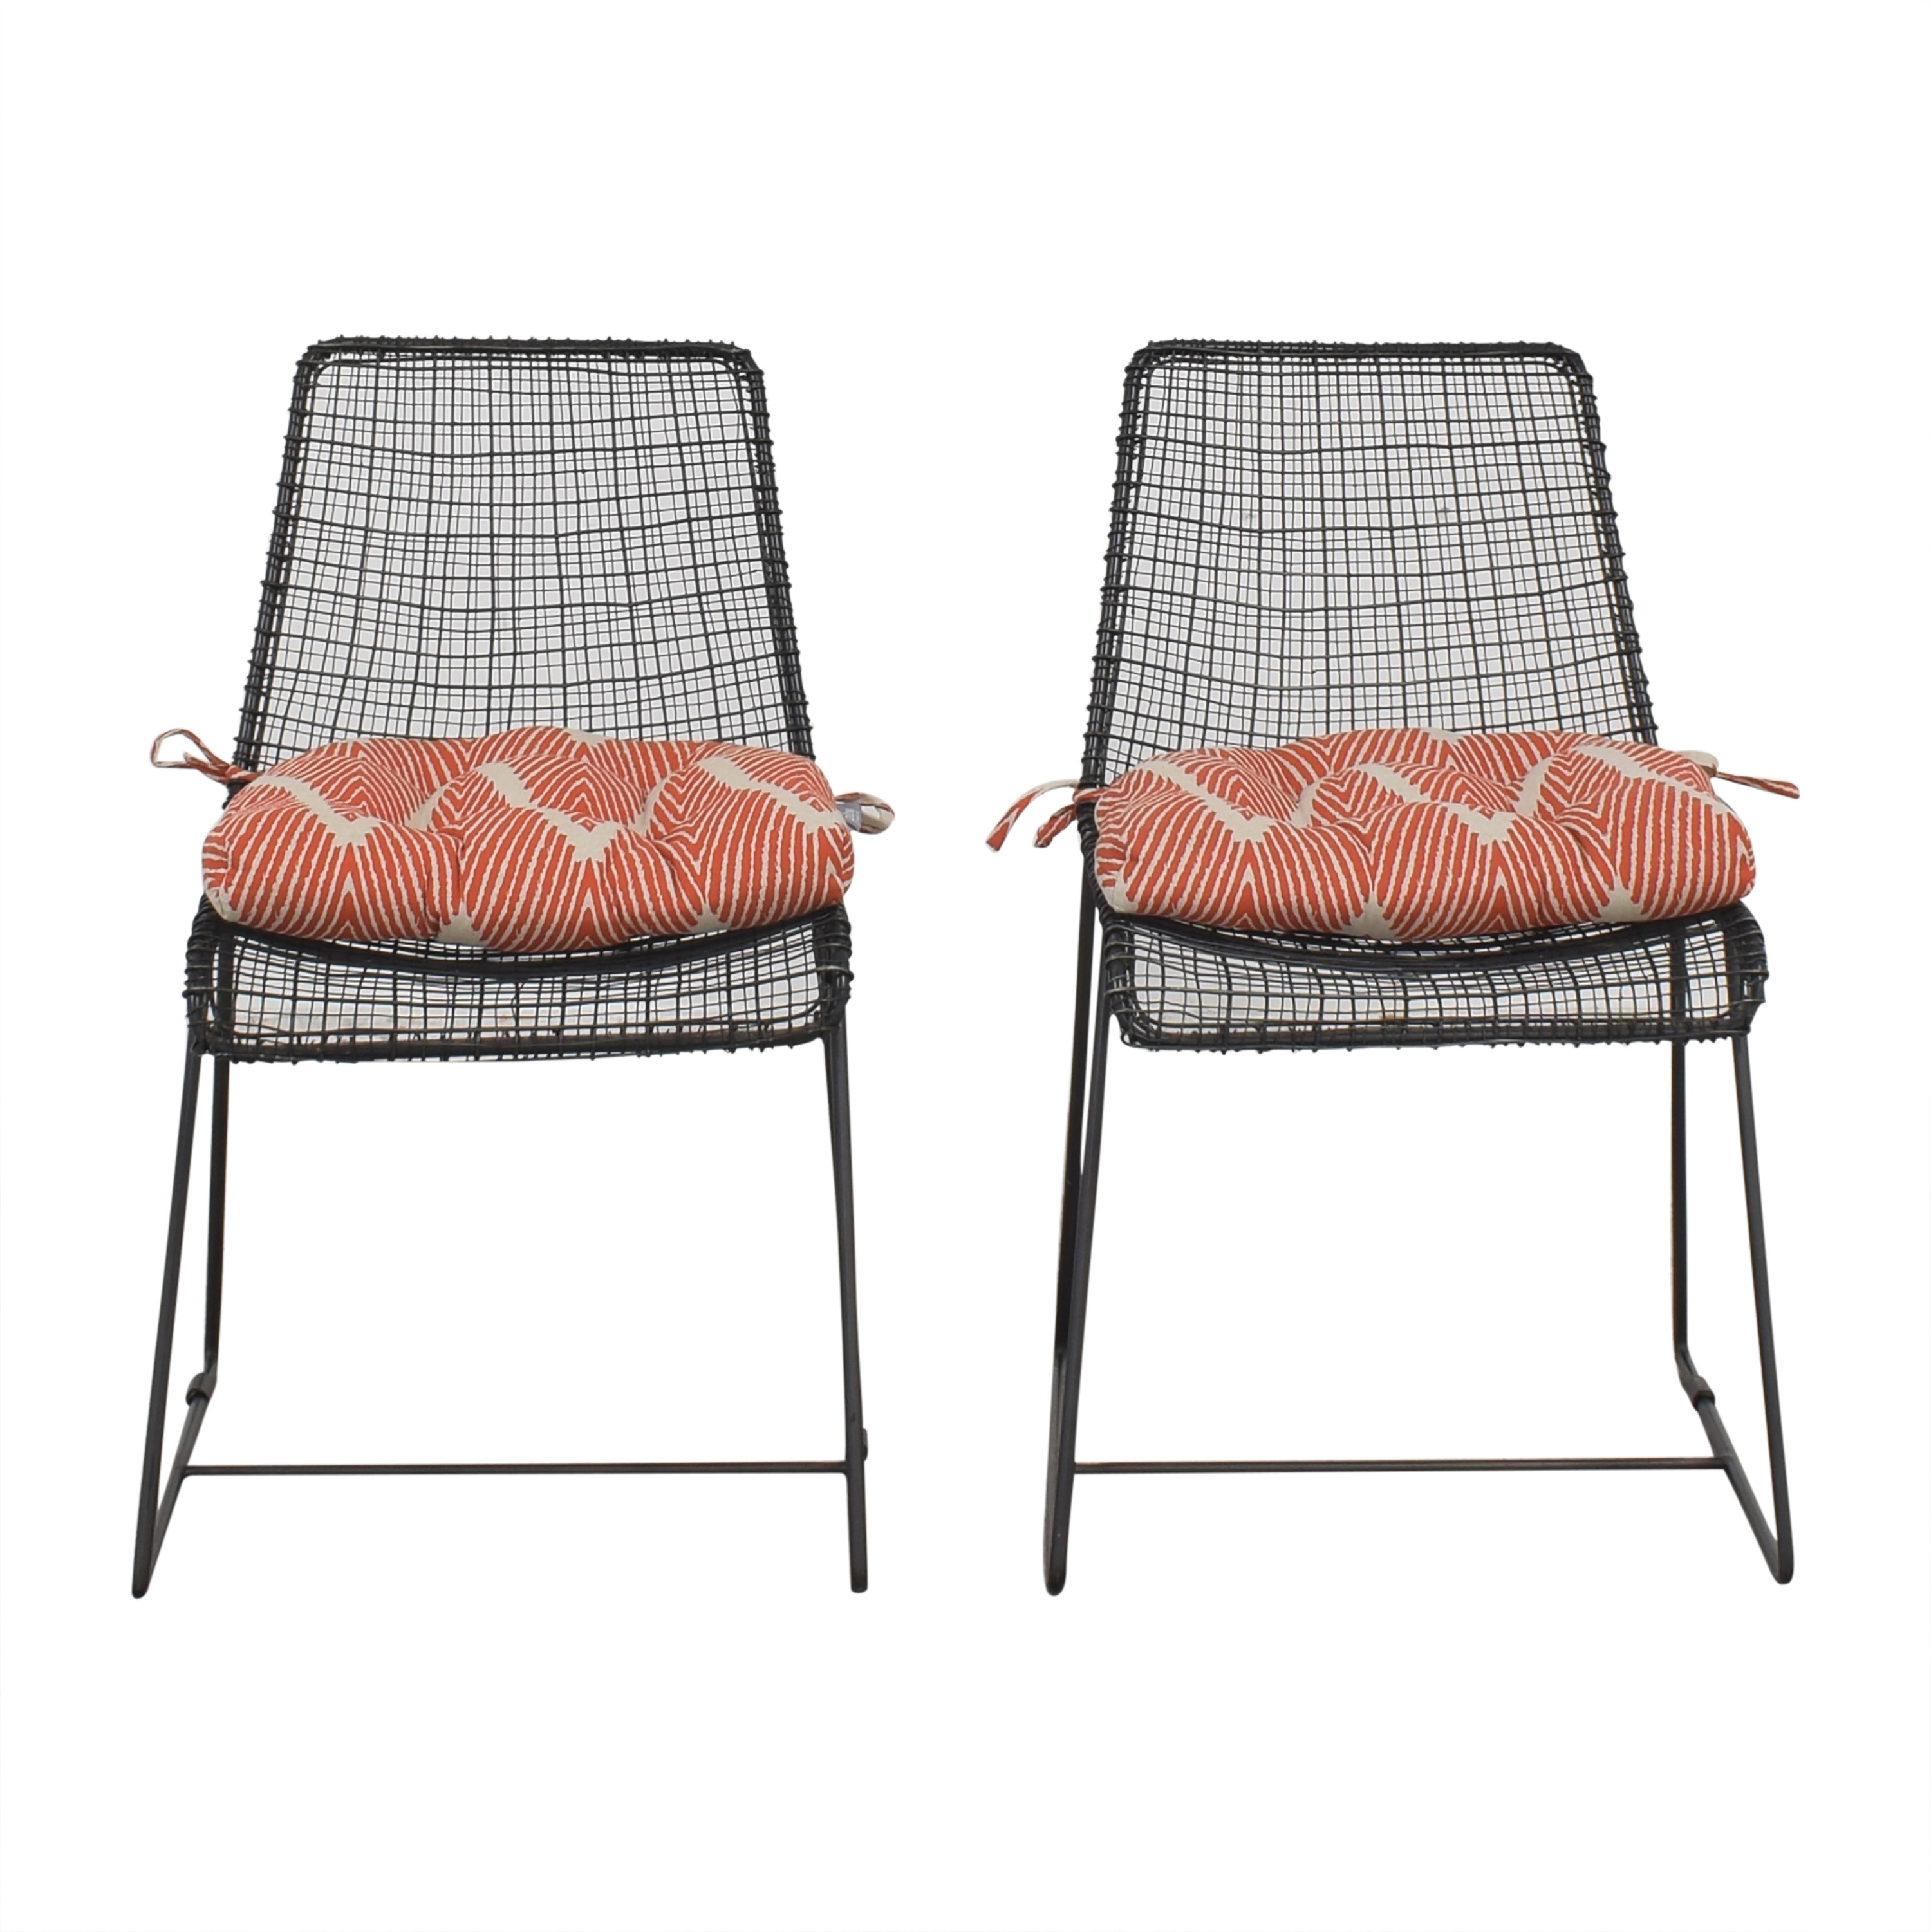 buy CB2 CB2 Reed Chairs with Cushions online